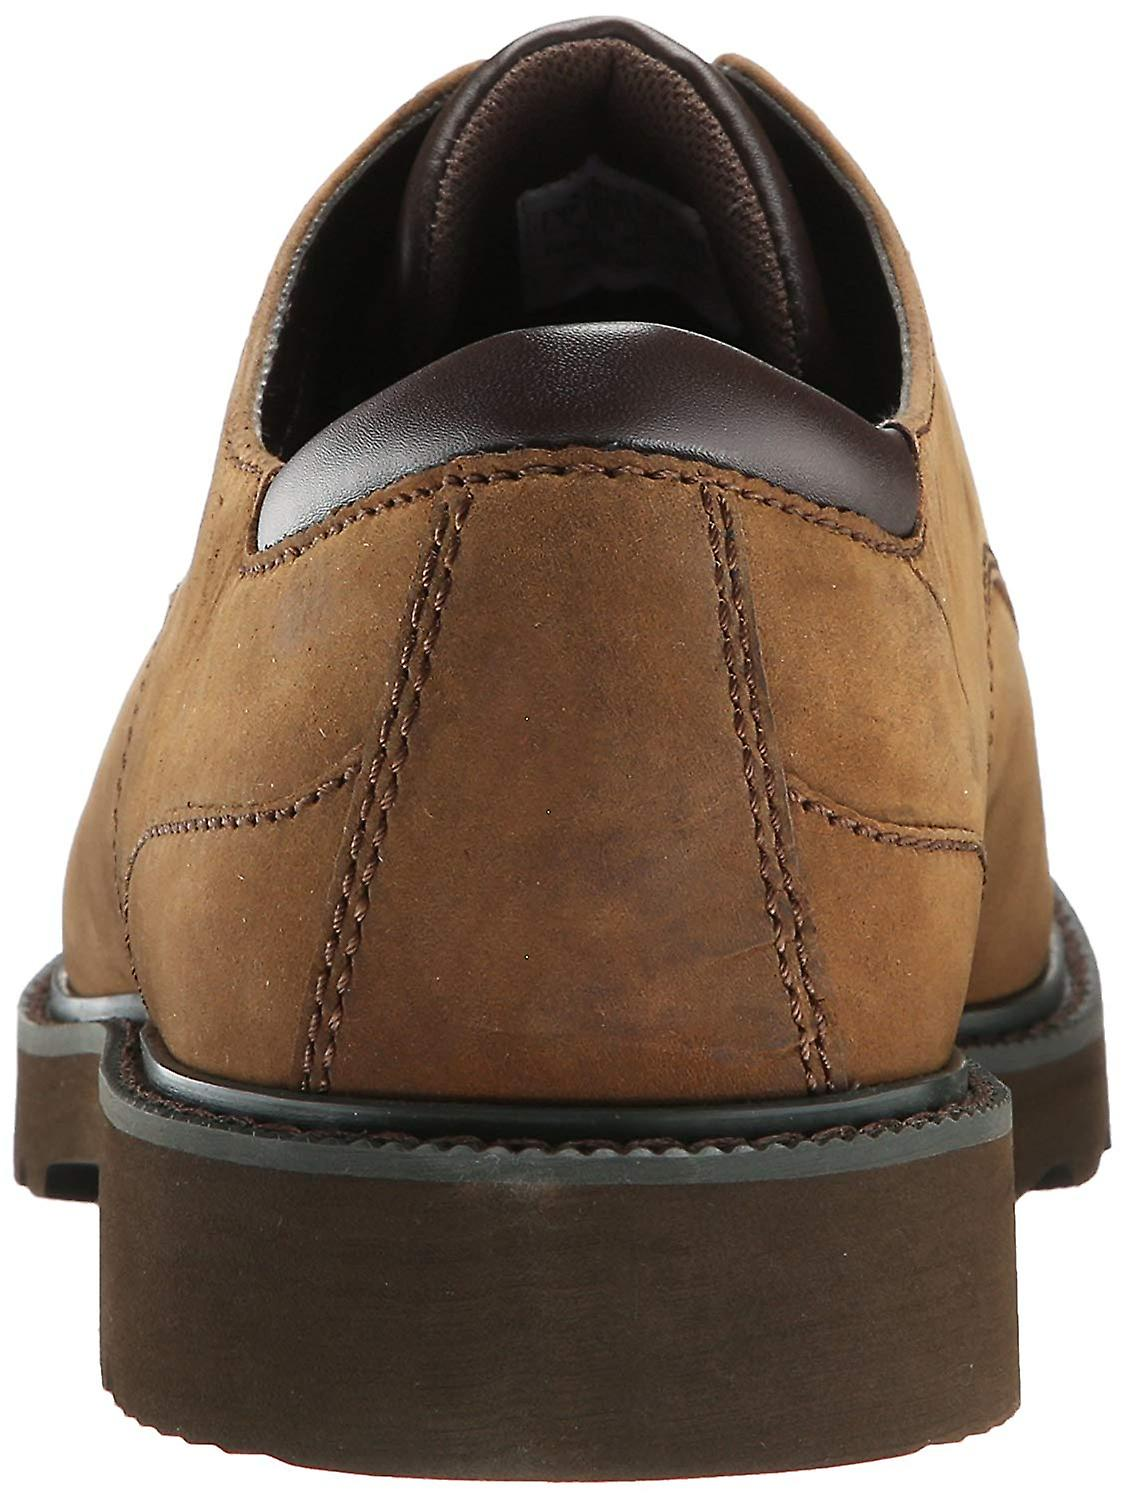 Rockport Mens Northfield Leather Lace Up Dress Oxfords